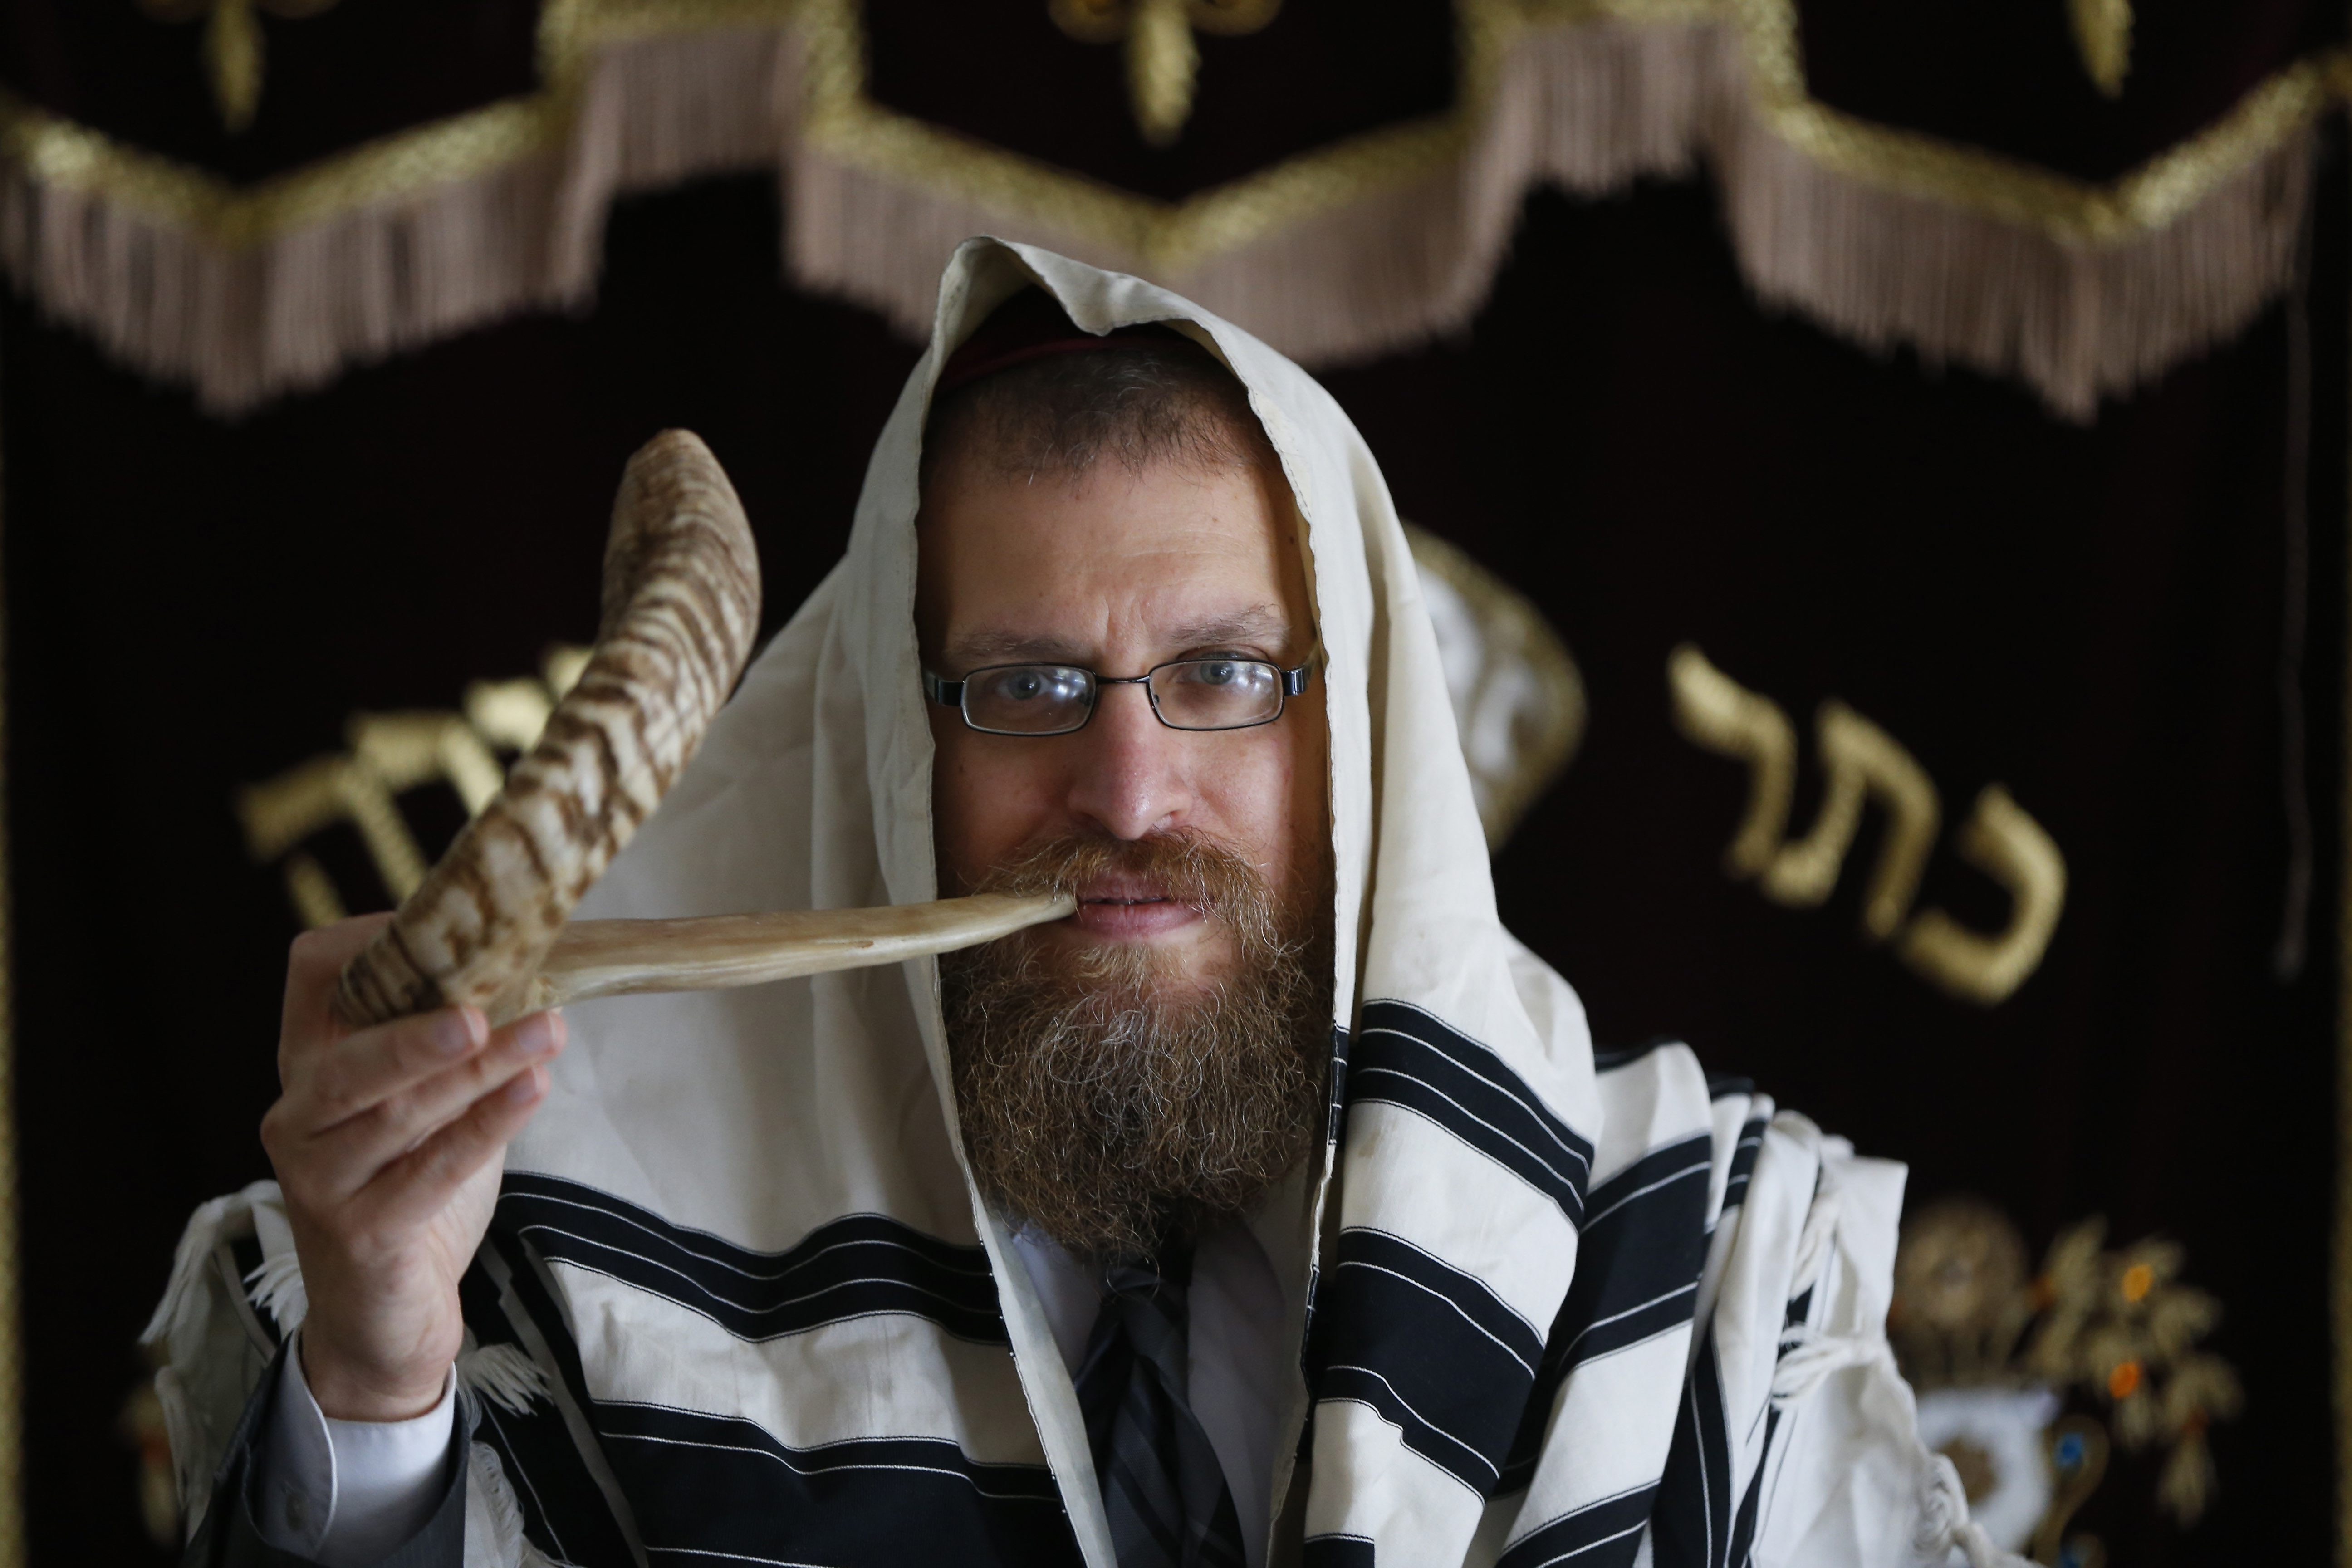 Rabbi Laizer Labkovski blows the shofar at the Jewish Discovery Center in Amherst. Labkovski, who with his wife, Chani, has 10 children and an 11th on the way, says he knew from an early age that he wanted to be involved in community work.